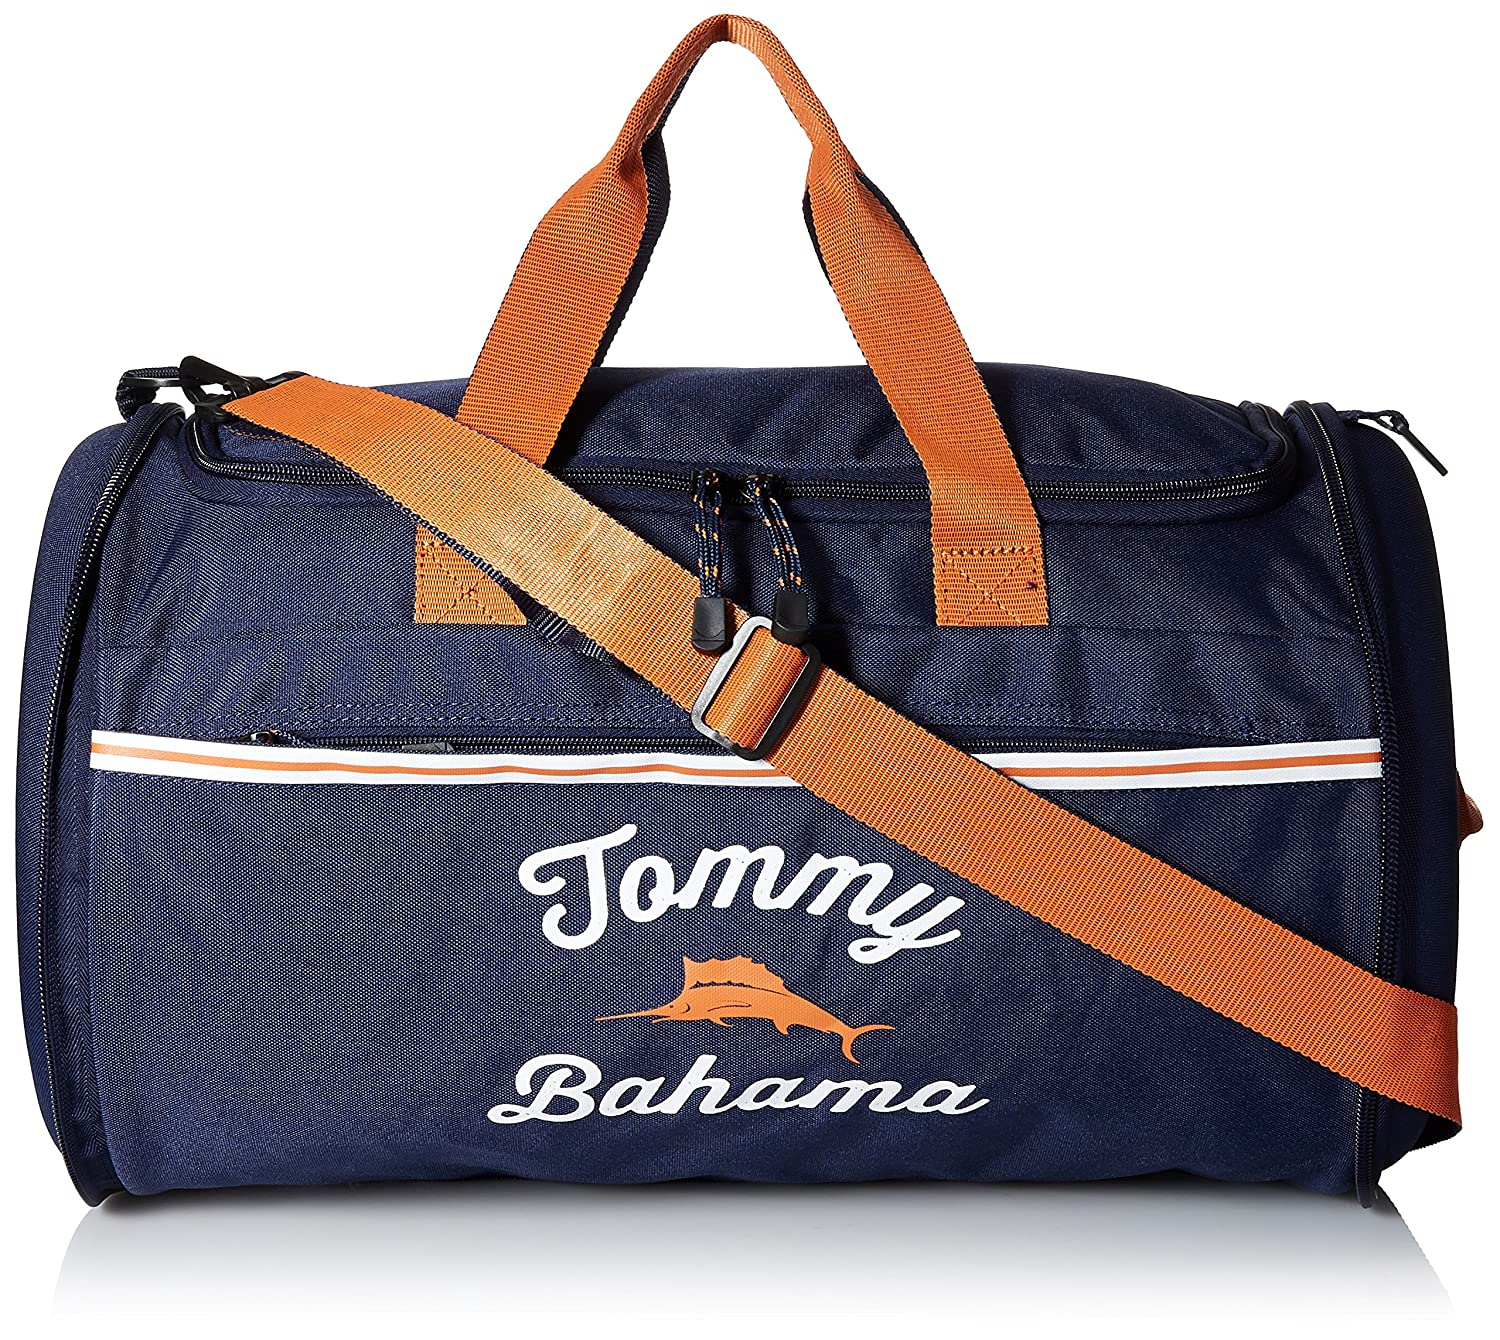 24105cdcac67 Amazon.com  Tommy Bahama Travel Carry Duffle Bag